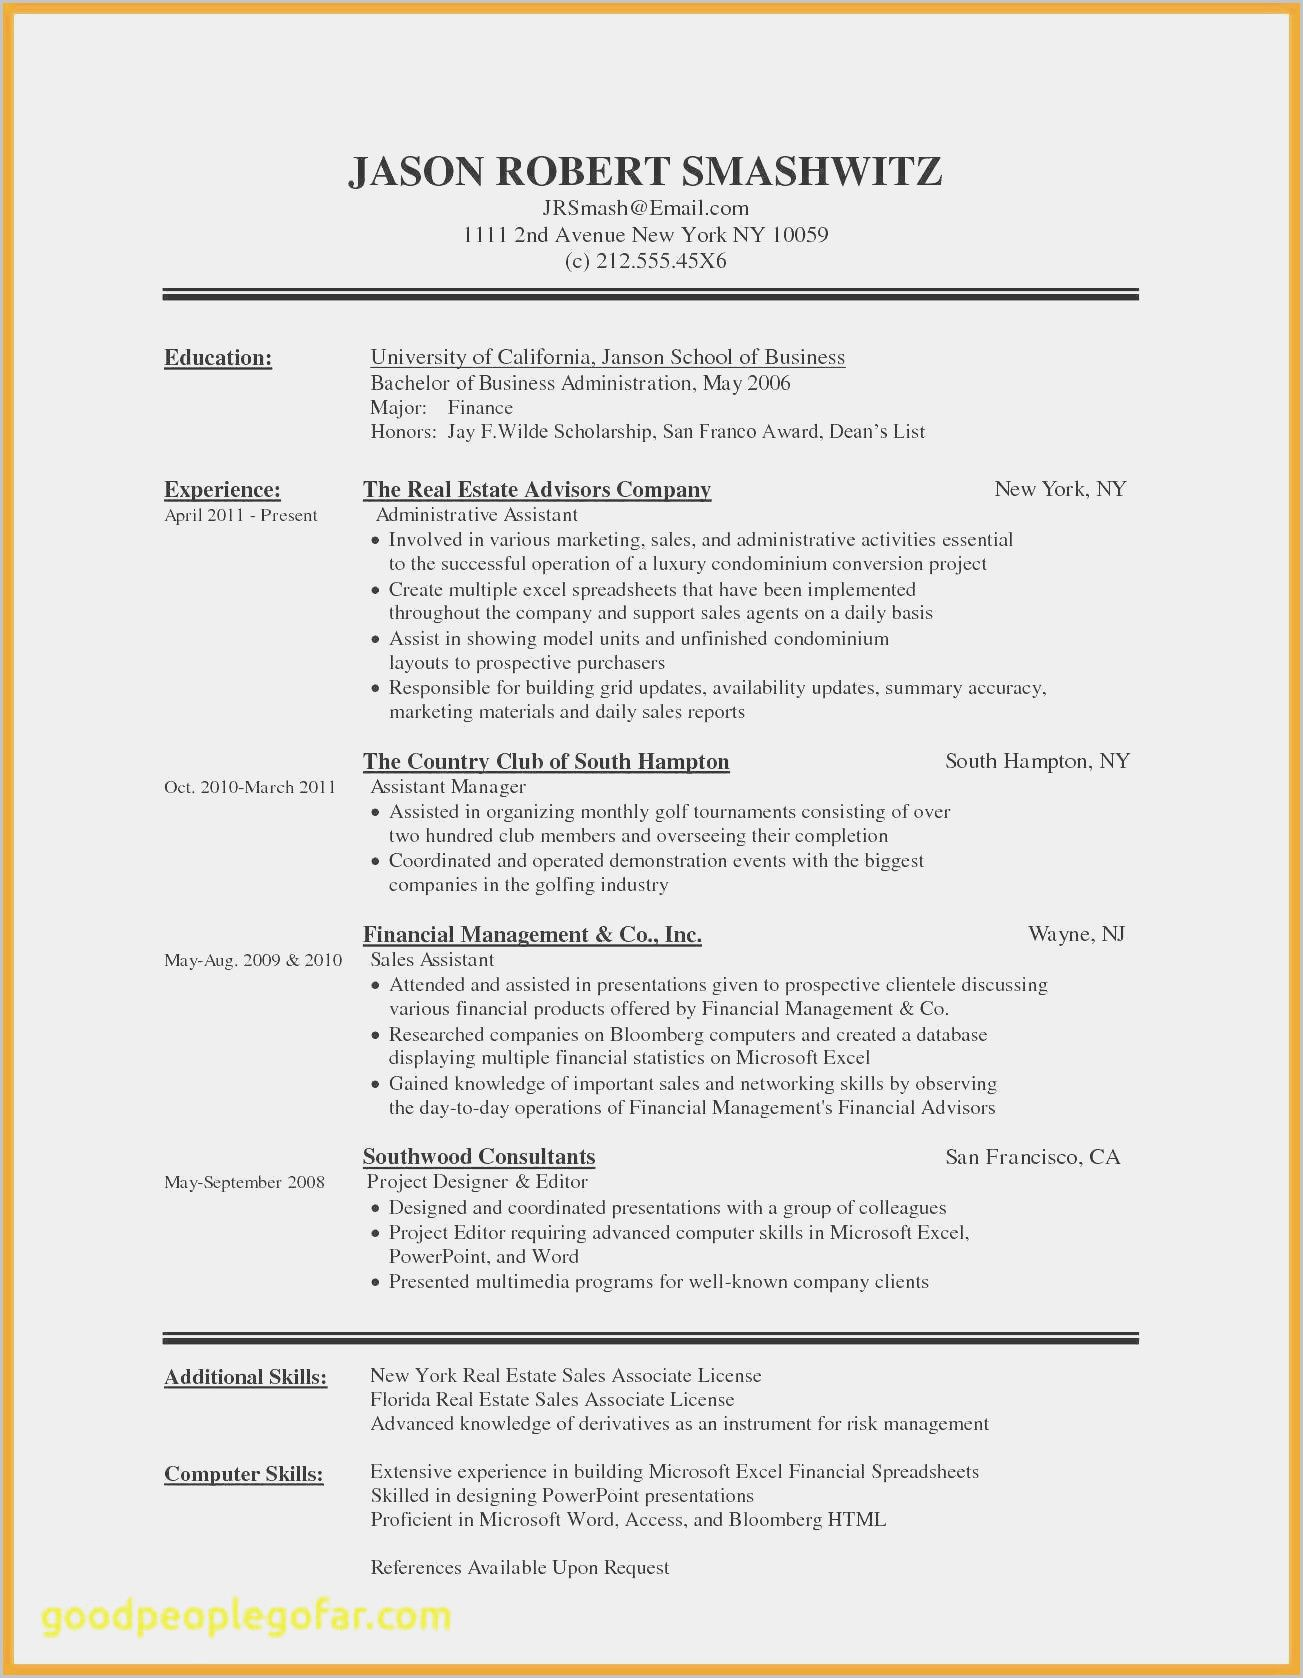 Resume Templates Wordpad Format in 2020 Resume template